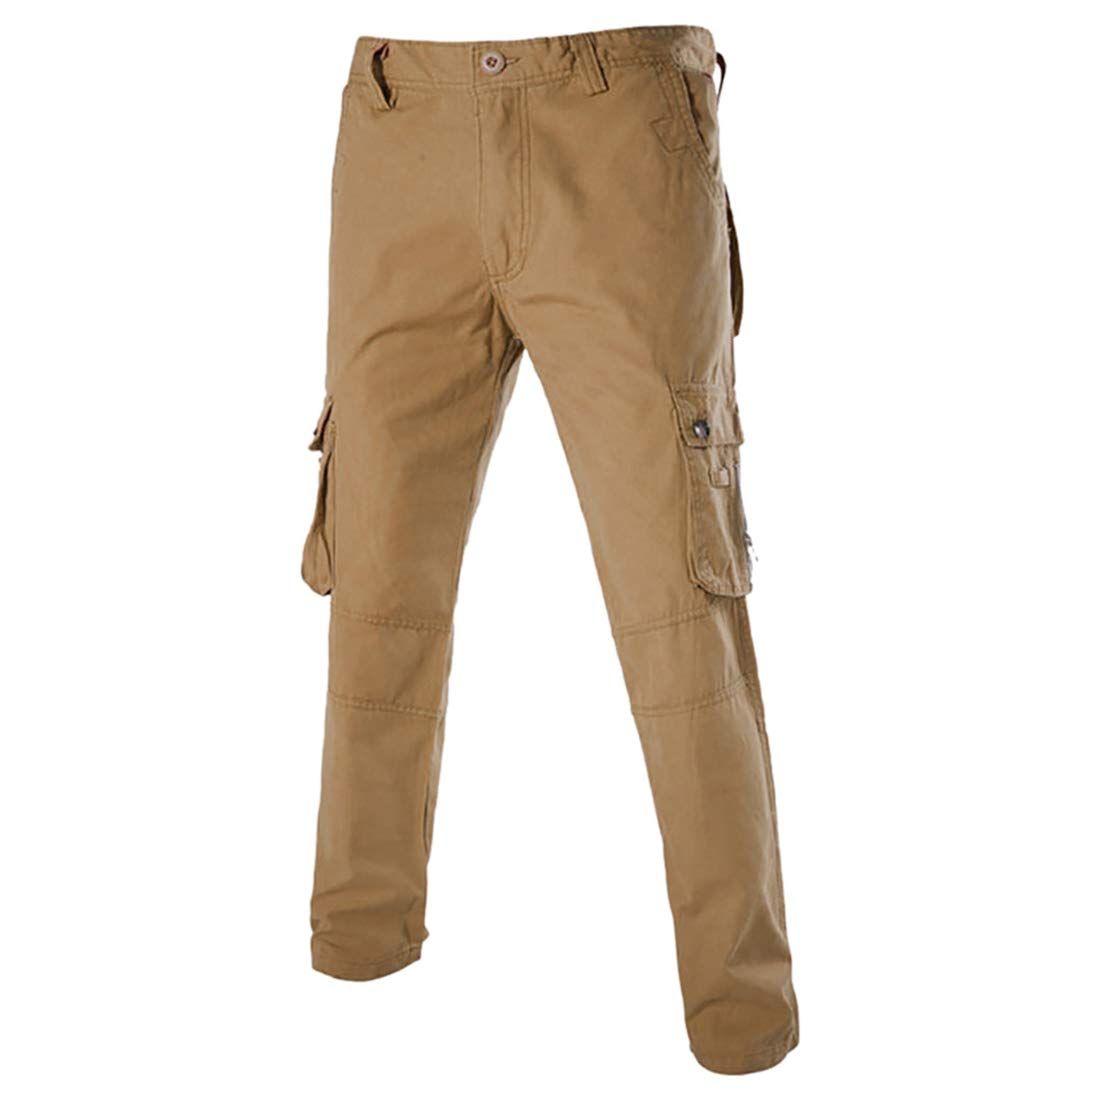 Spbamboo Mens Pants Cargo Casual Multi-Pocket Zipper Outdoors Solid Trousers